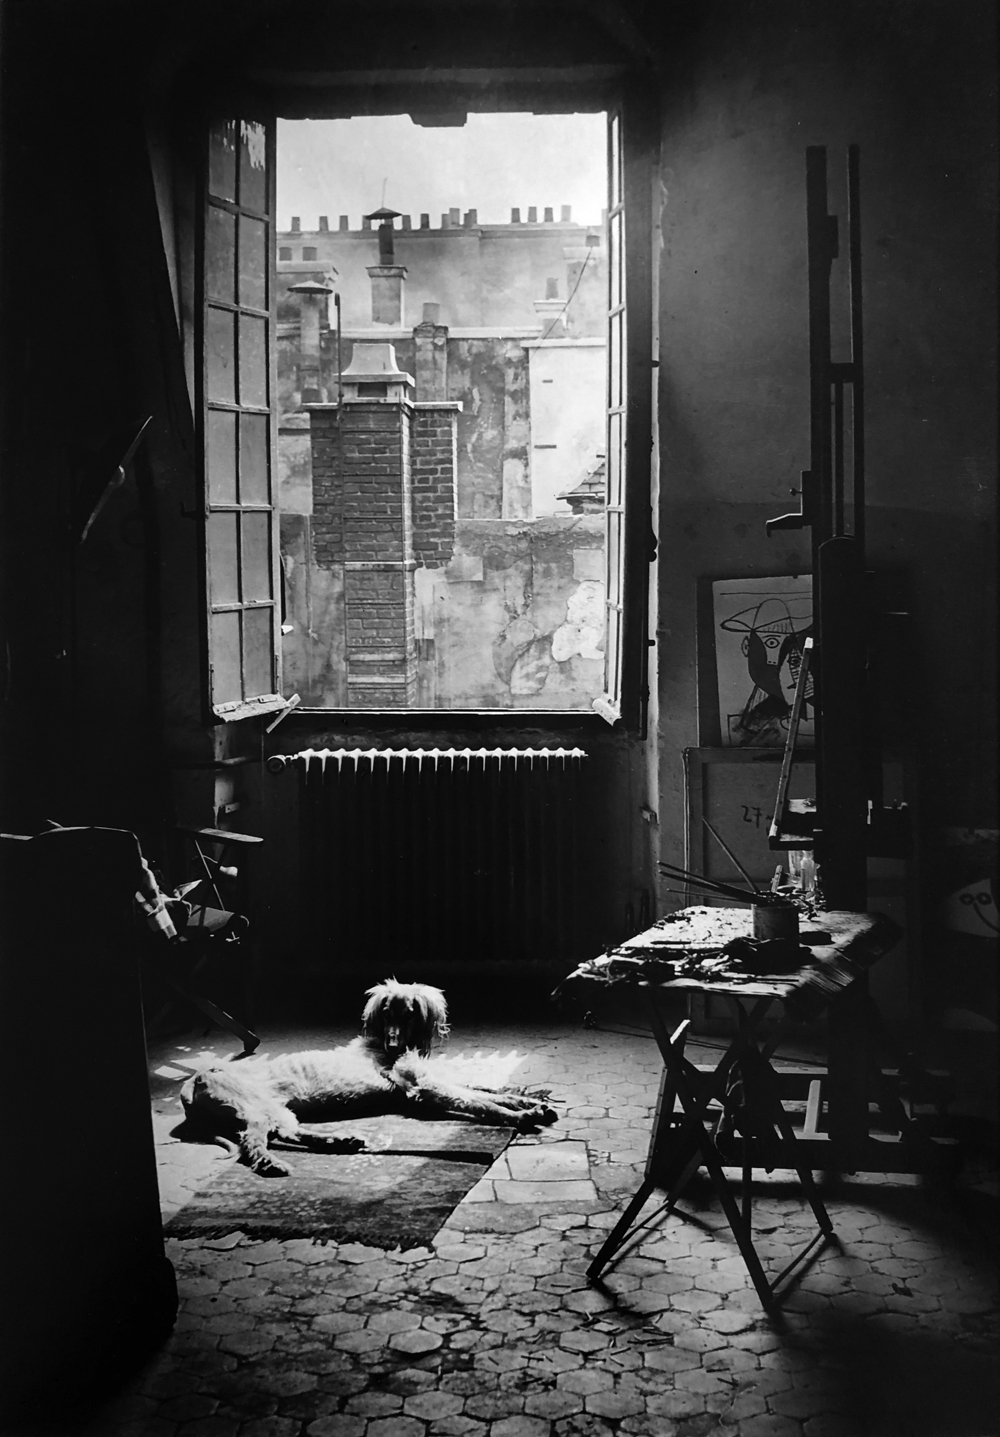 Brassaï, Le Chien Kazbek dans l'Atelier de Picasso, Quai des Grands Augustins, Paris, 1944, gelatin silver print, 15.25 x 10.25 inches, signed and stamped by artist, price on request